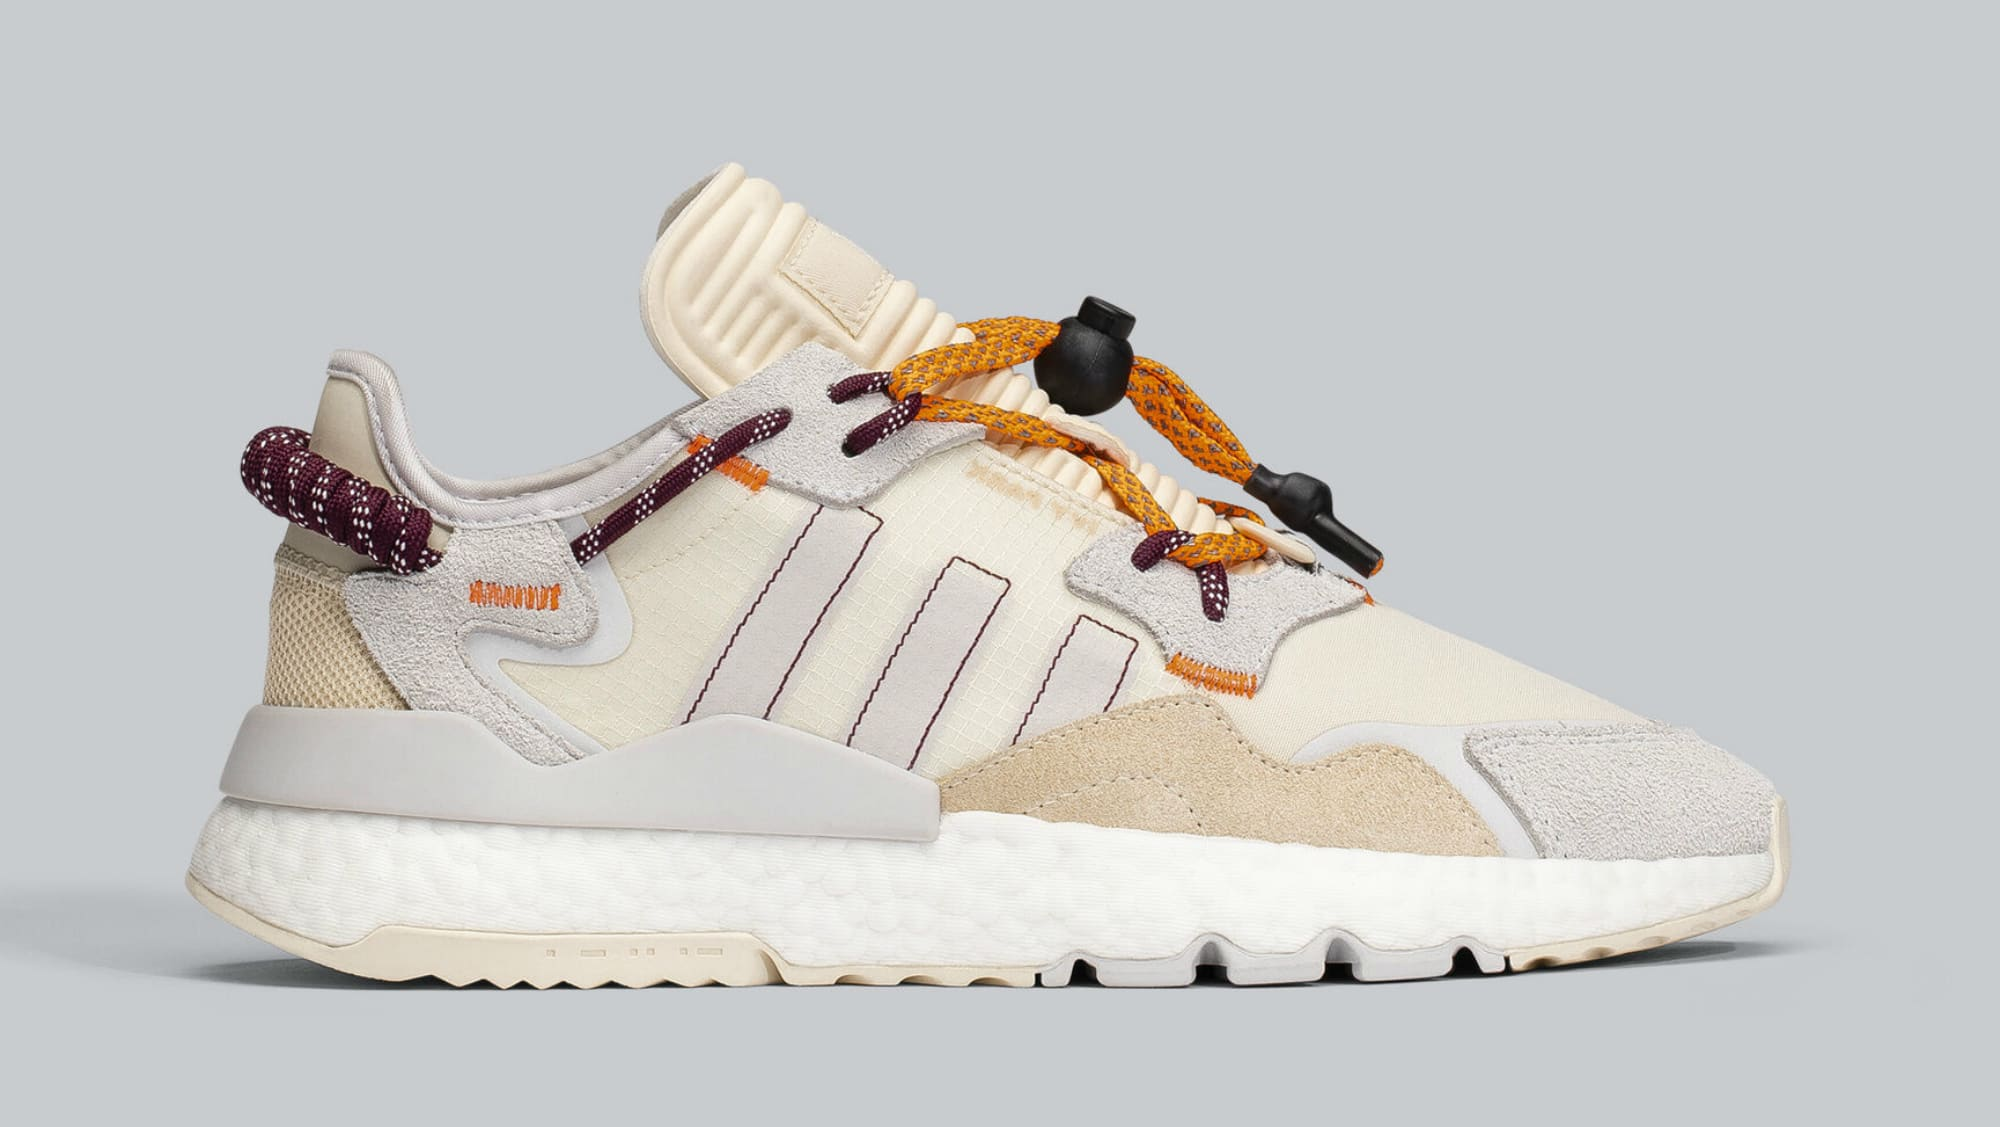 ivy-park-adidas-nite-jogger-fx3239-release-date